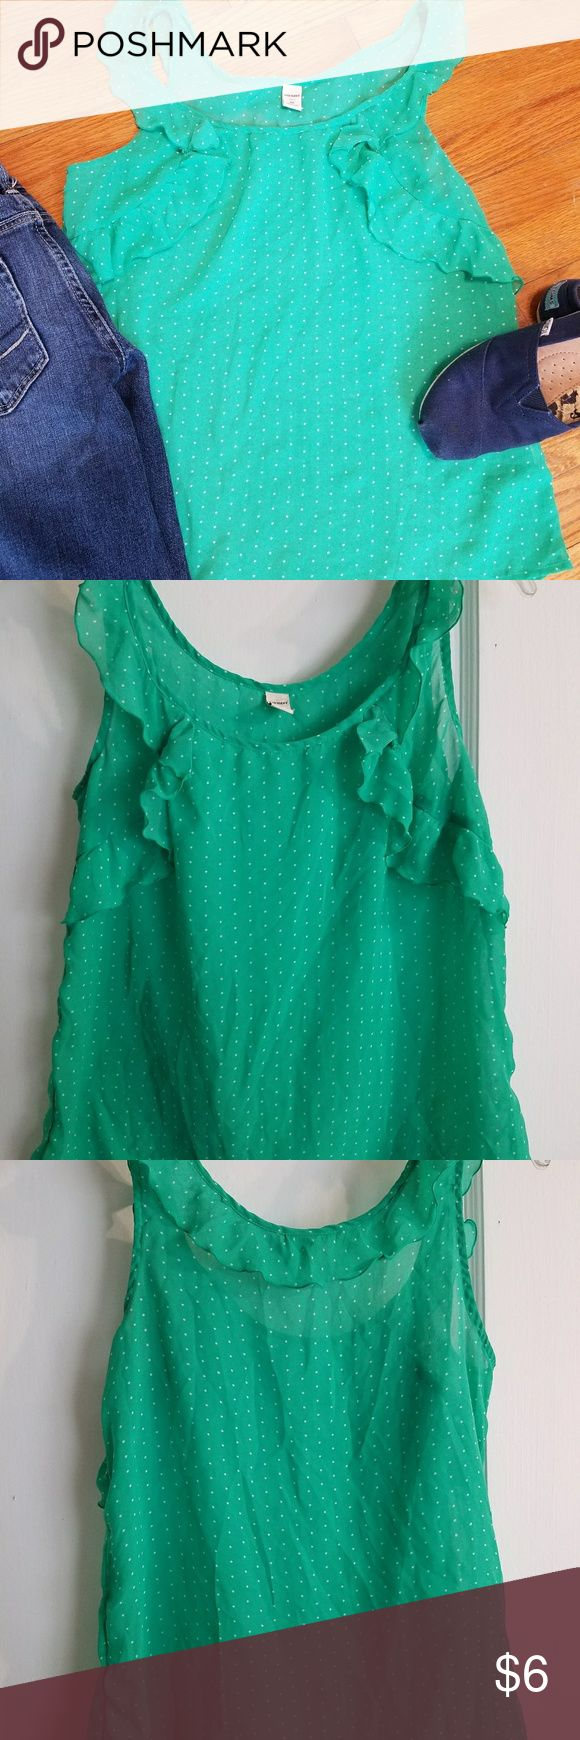 Old Navy sheer polka dot tank Light-weight sheer jelly green tank with white polka dots can be dressed up with white cropped pants or down with skinny jeans! Old Navy Tops Blouses